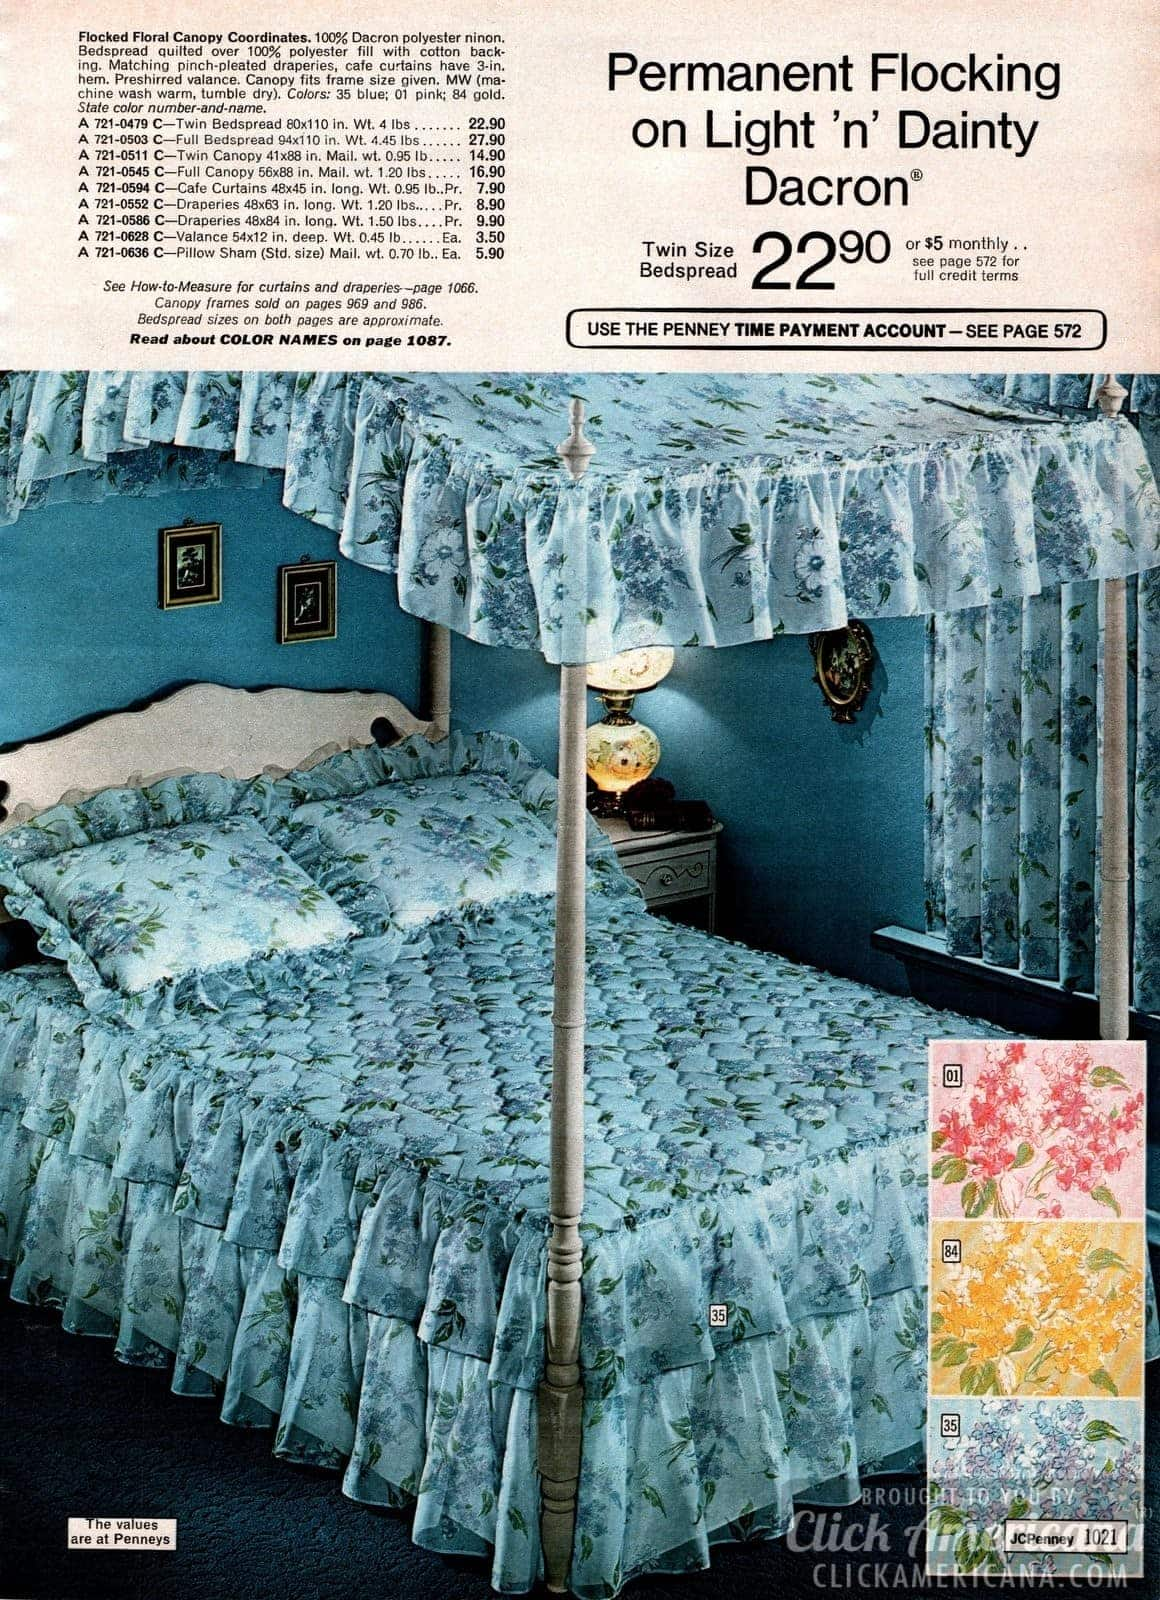 Flocked floral canopy coordinated bedding in blue, pink and gold